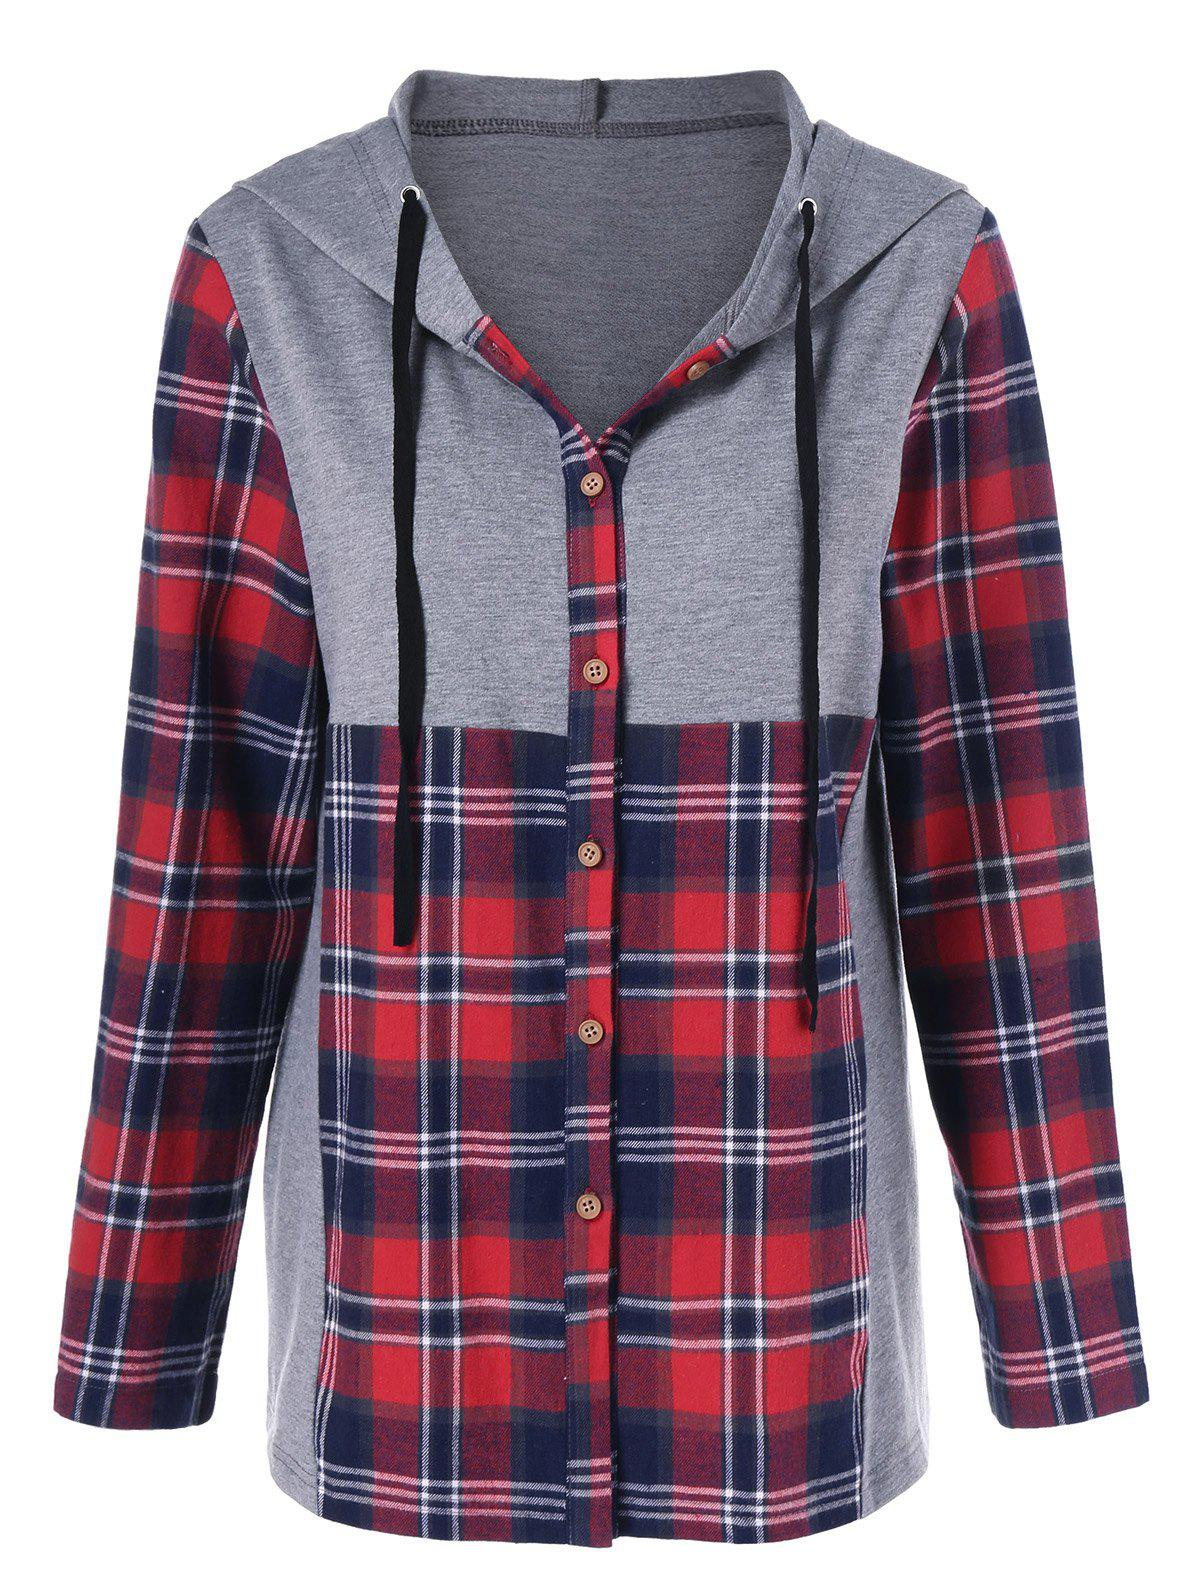 plaid trim button up hoodie gray red l in sweatshirts. Black Bedroom Furniture Sets. Home Design Ideas